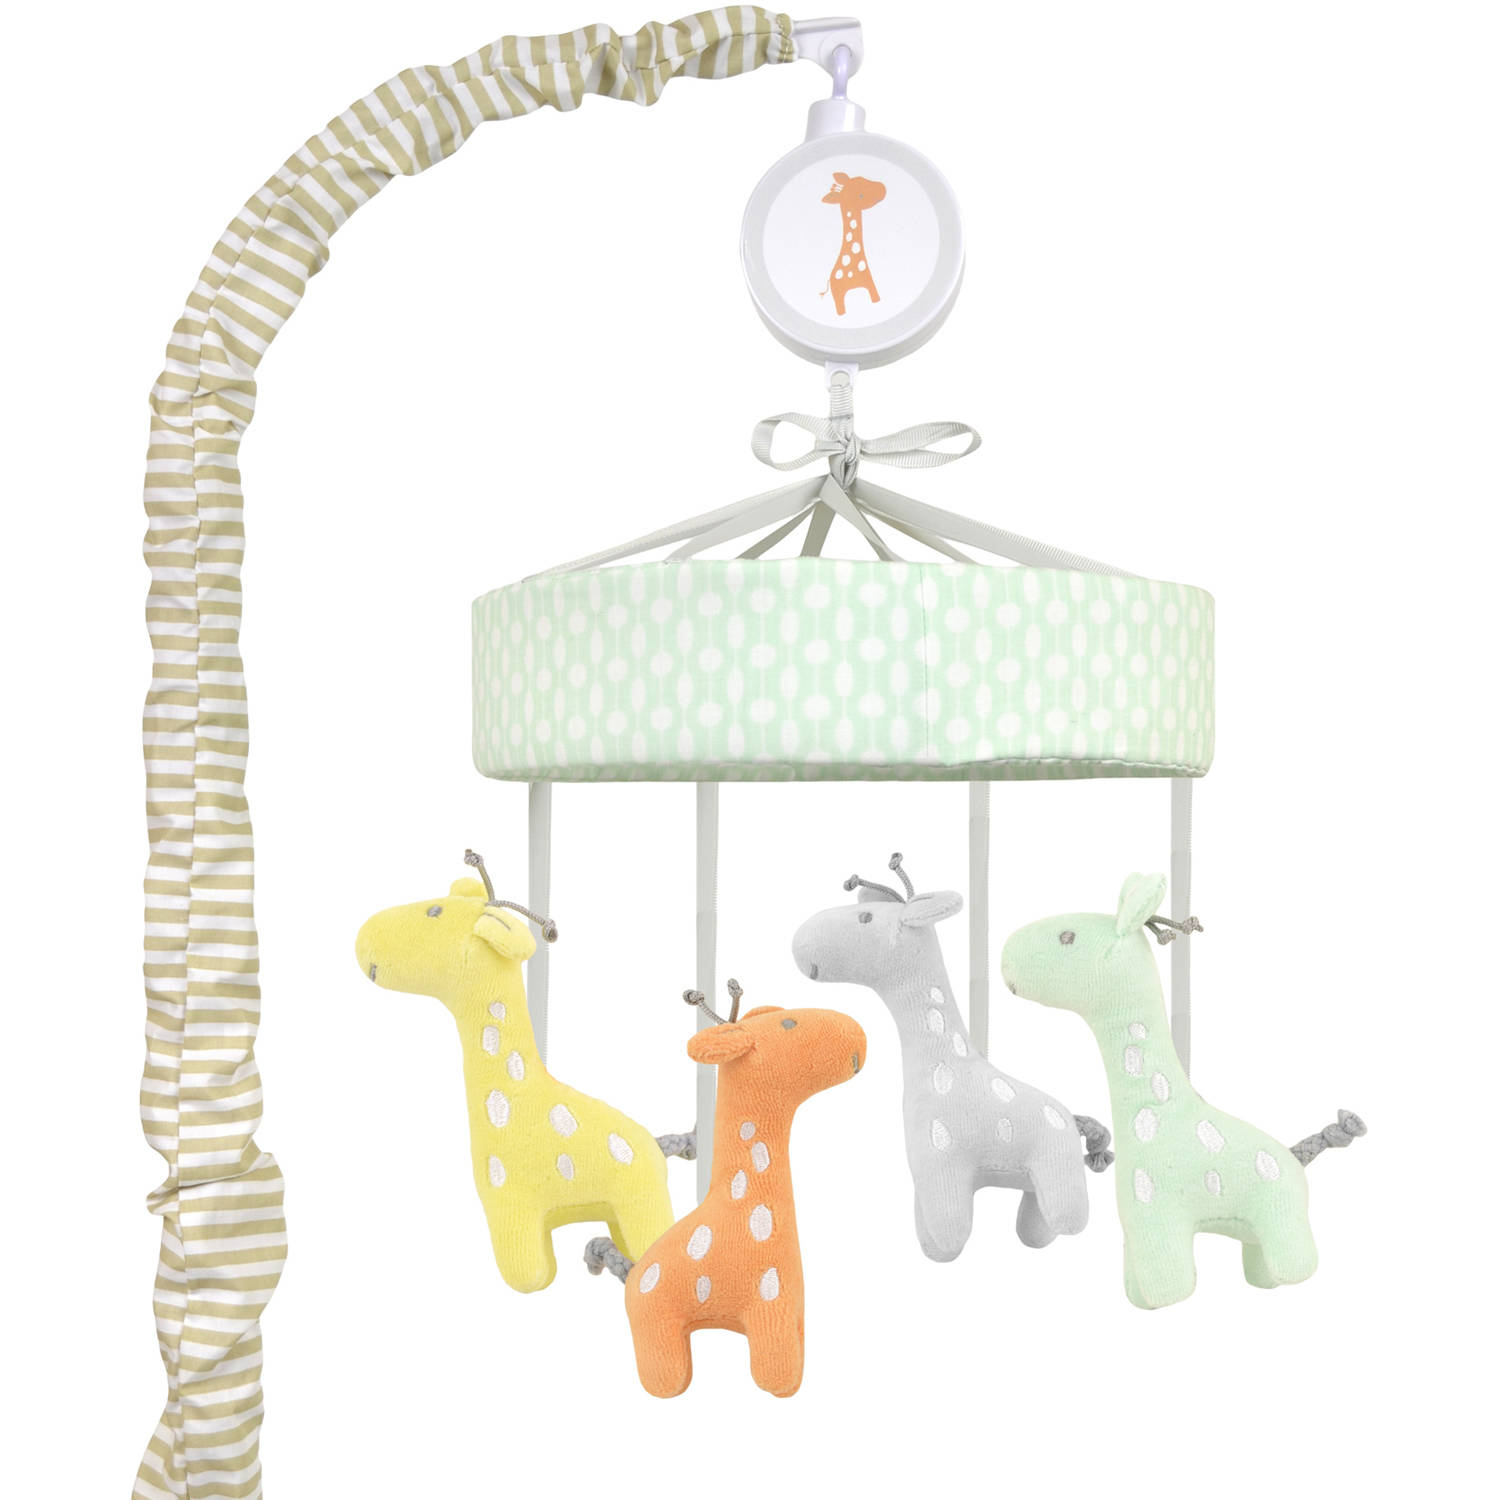 bacati elephants musical mobile with hanging toys pink gray. Black Bedroom Furniture Sets. Home Design Ideas